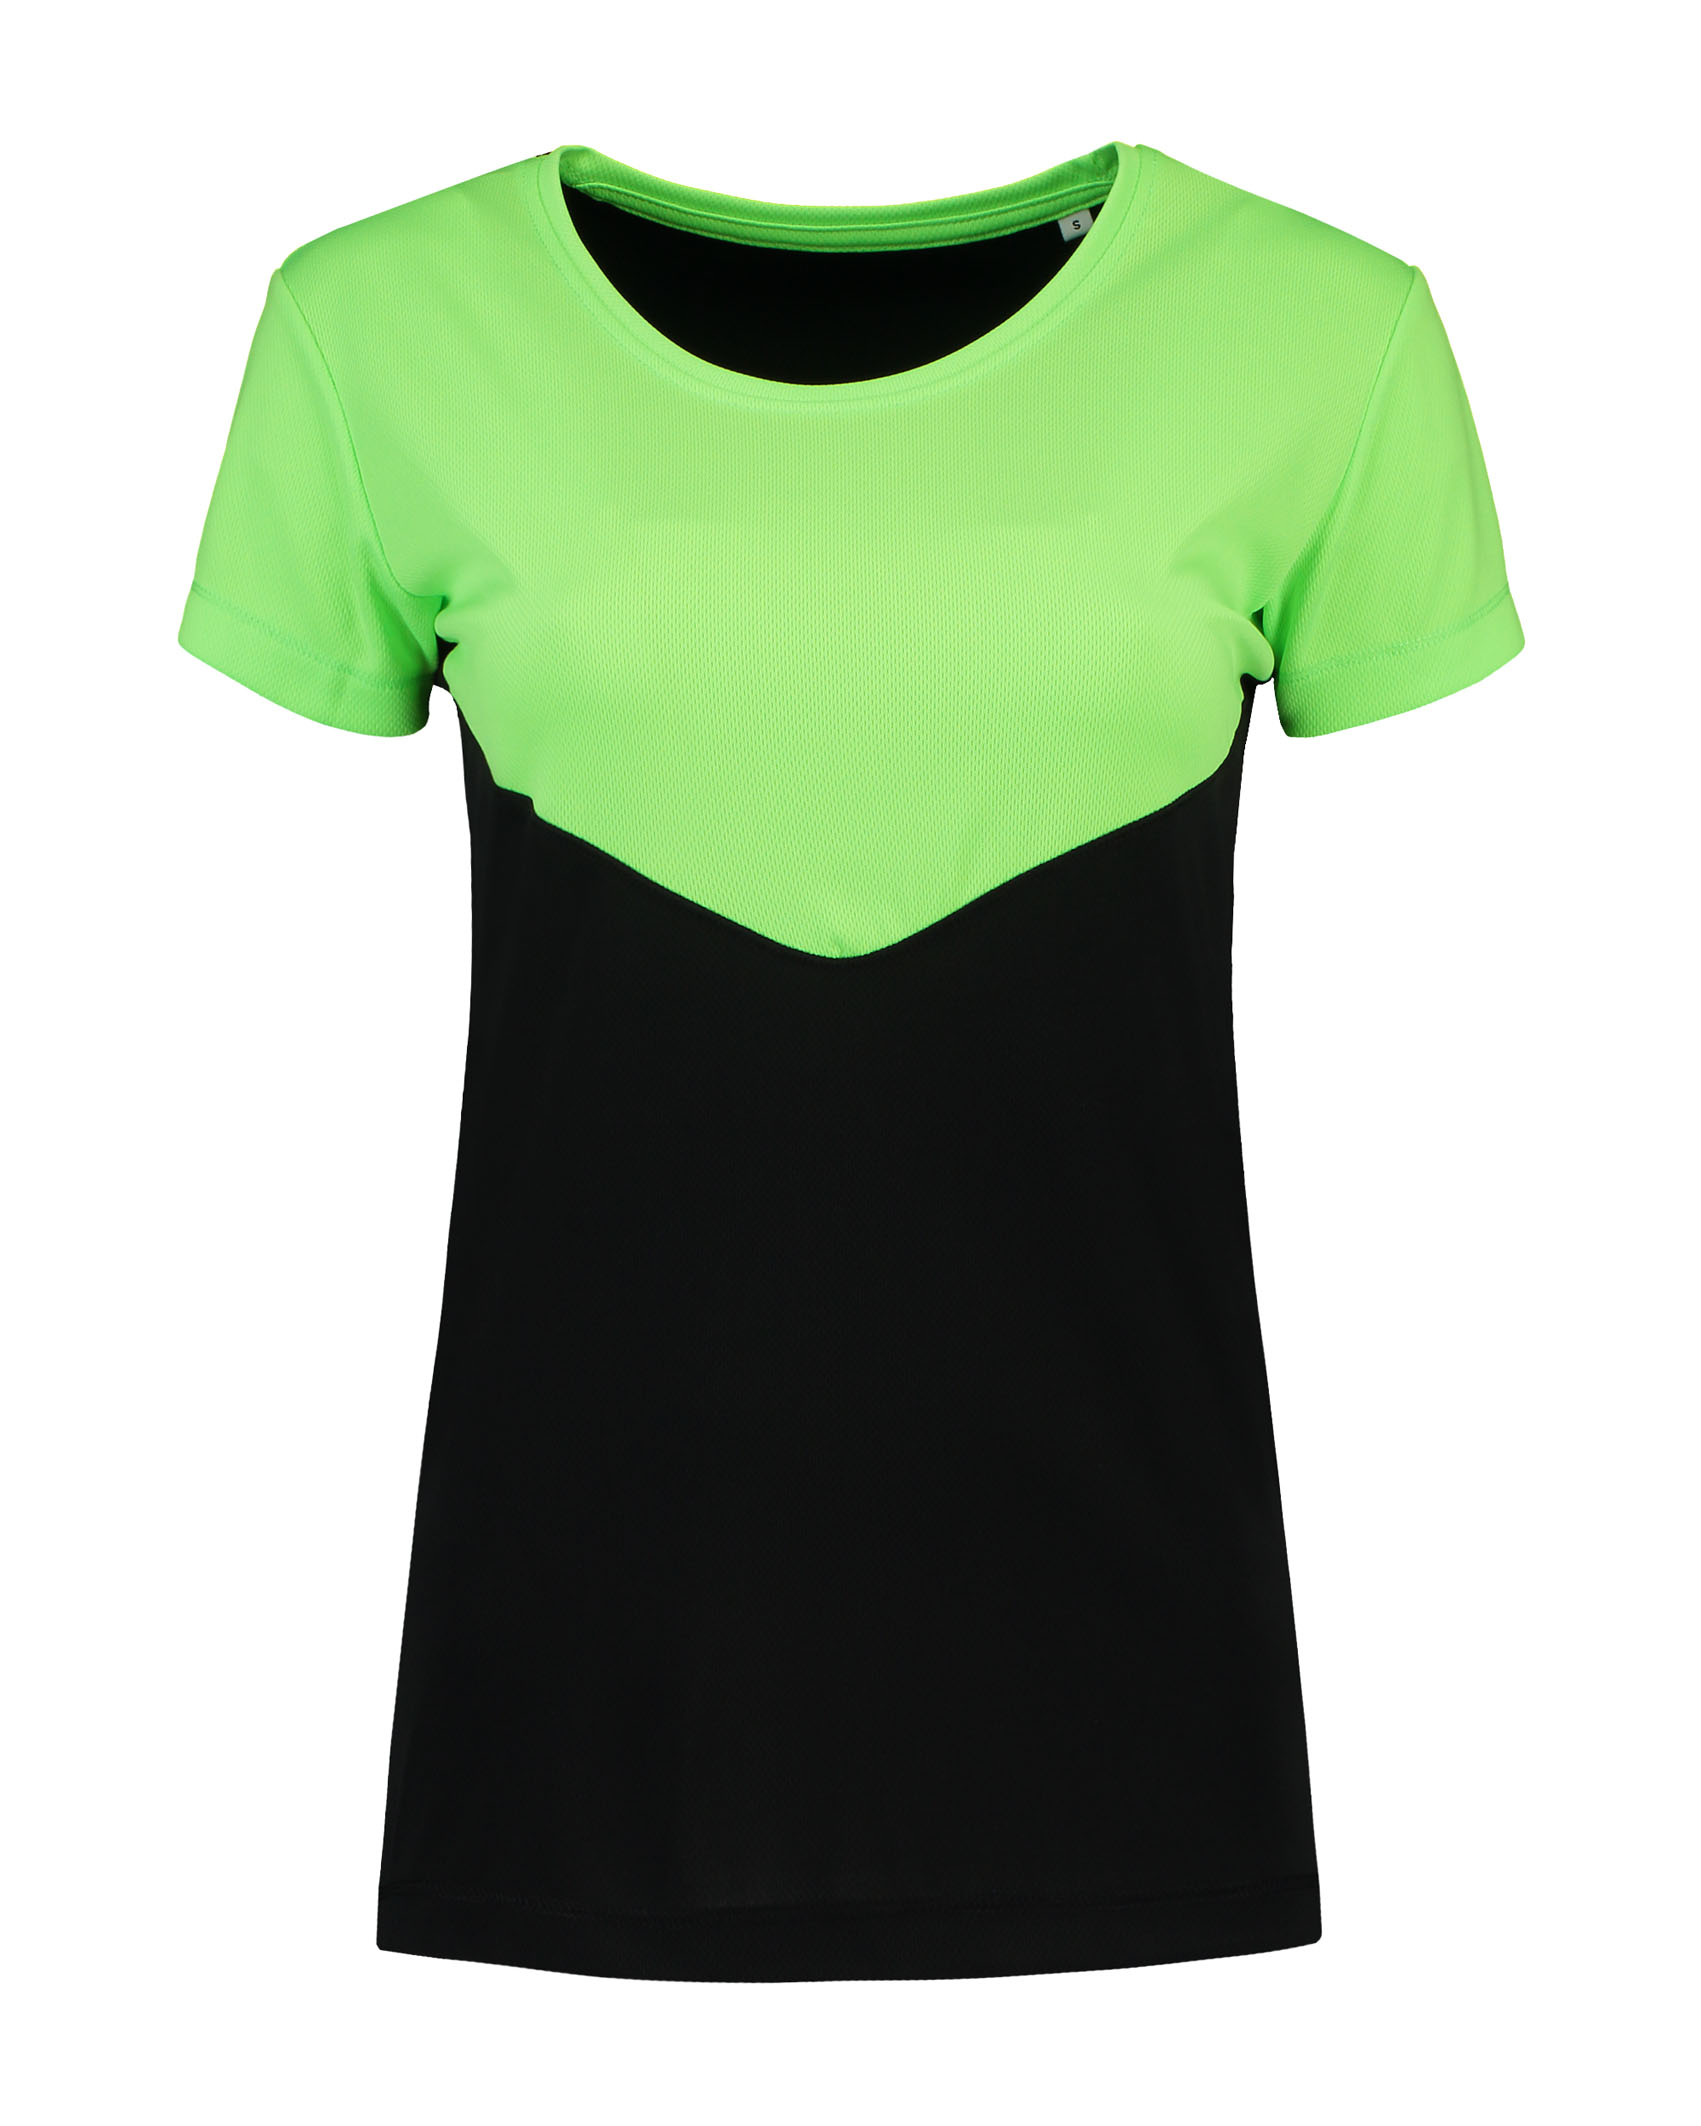 L&S T-shirt Contrast Sport SS for her